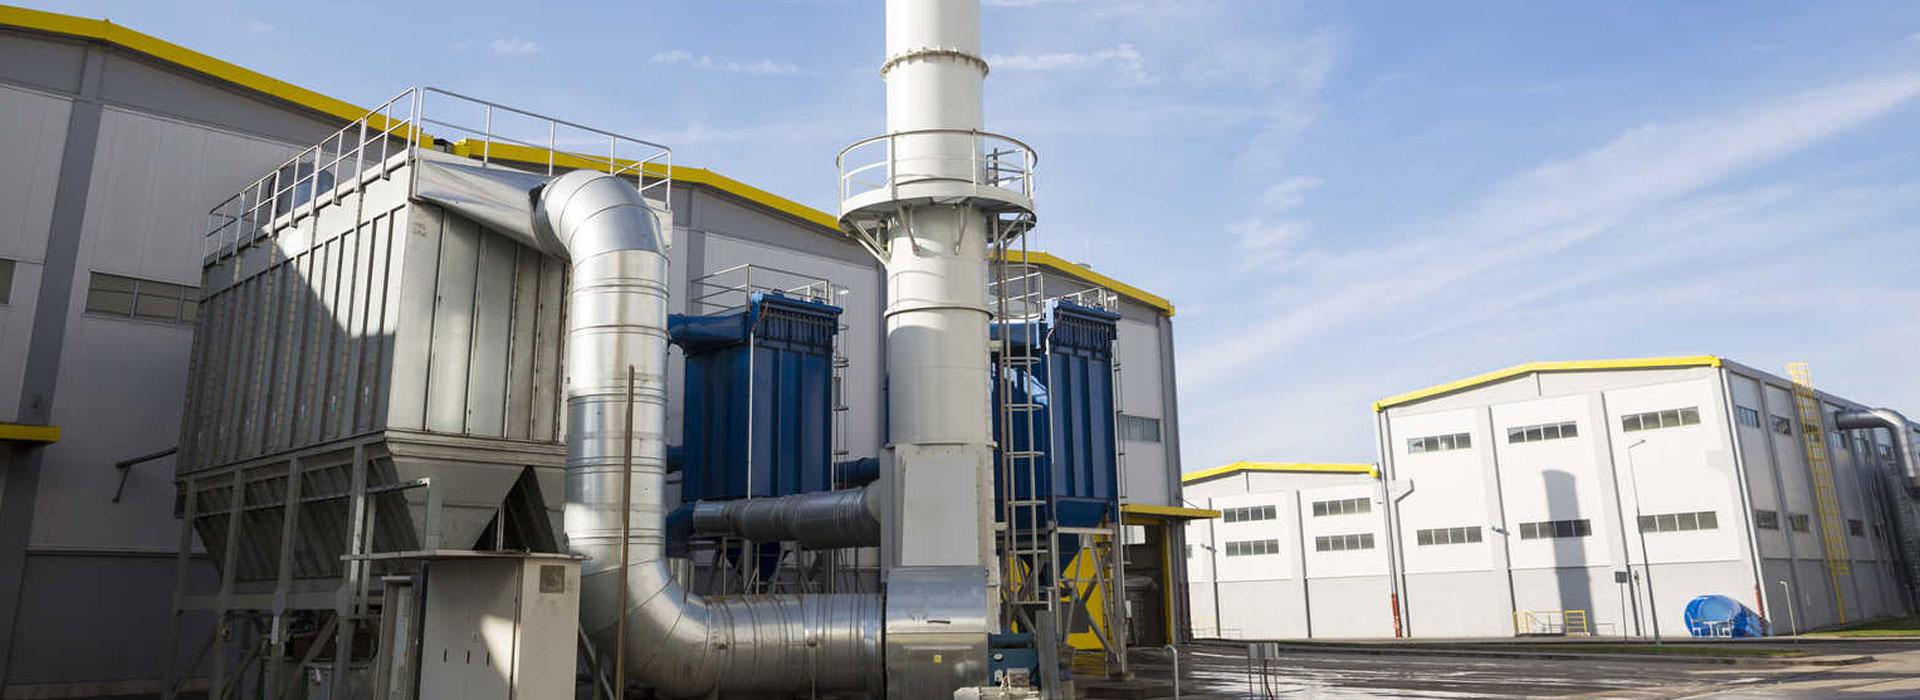 Slideshow - Waste Heat Recovery Plant